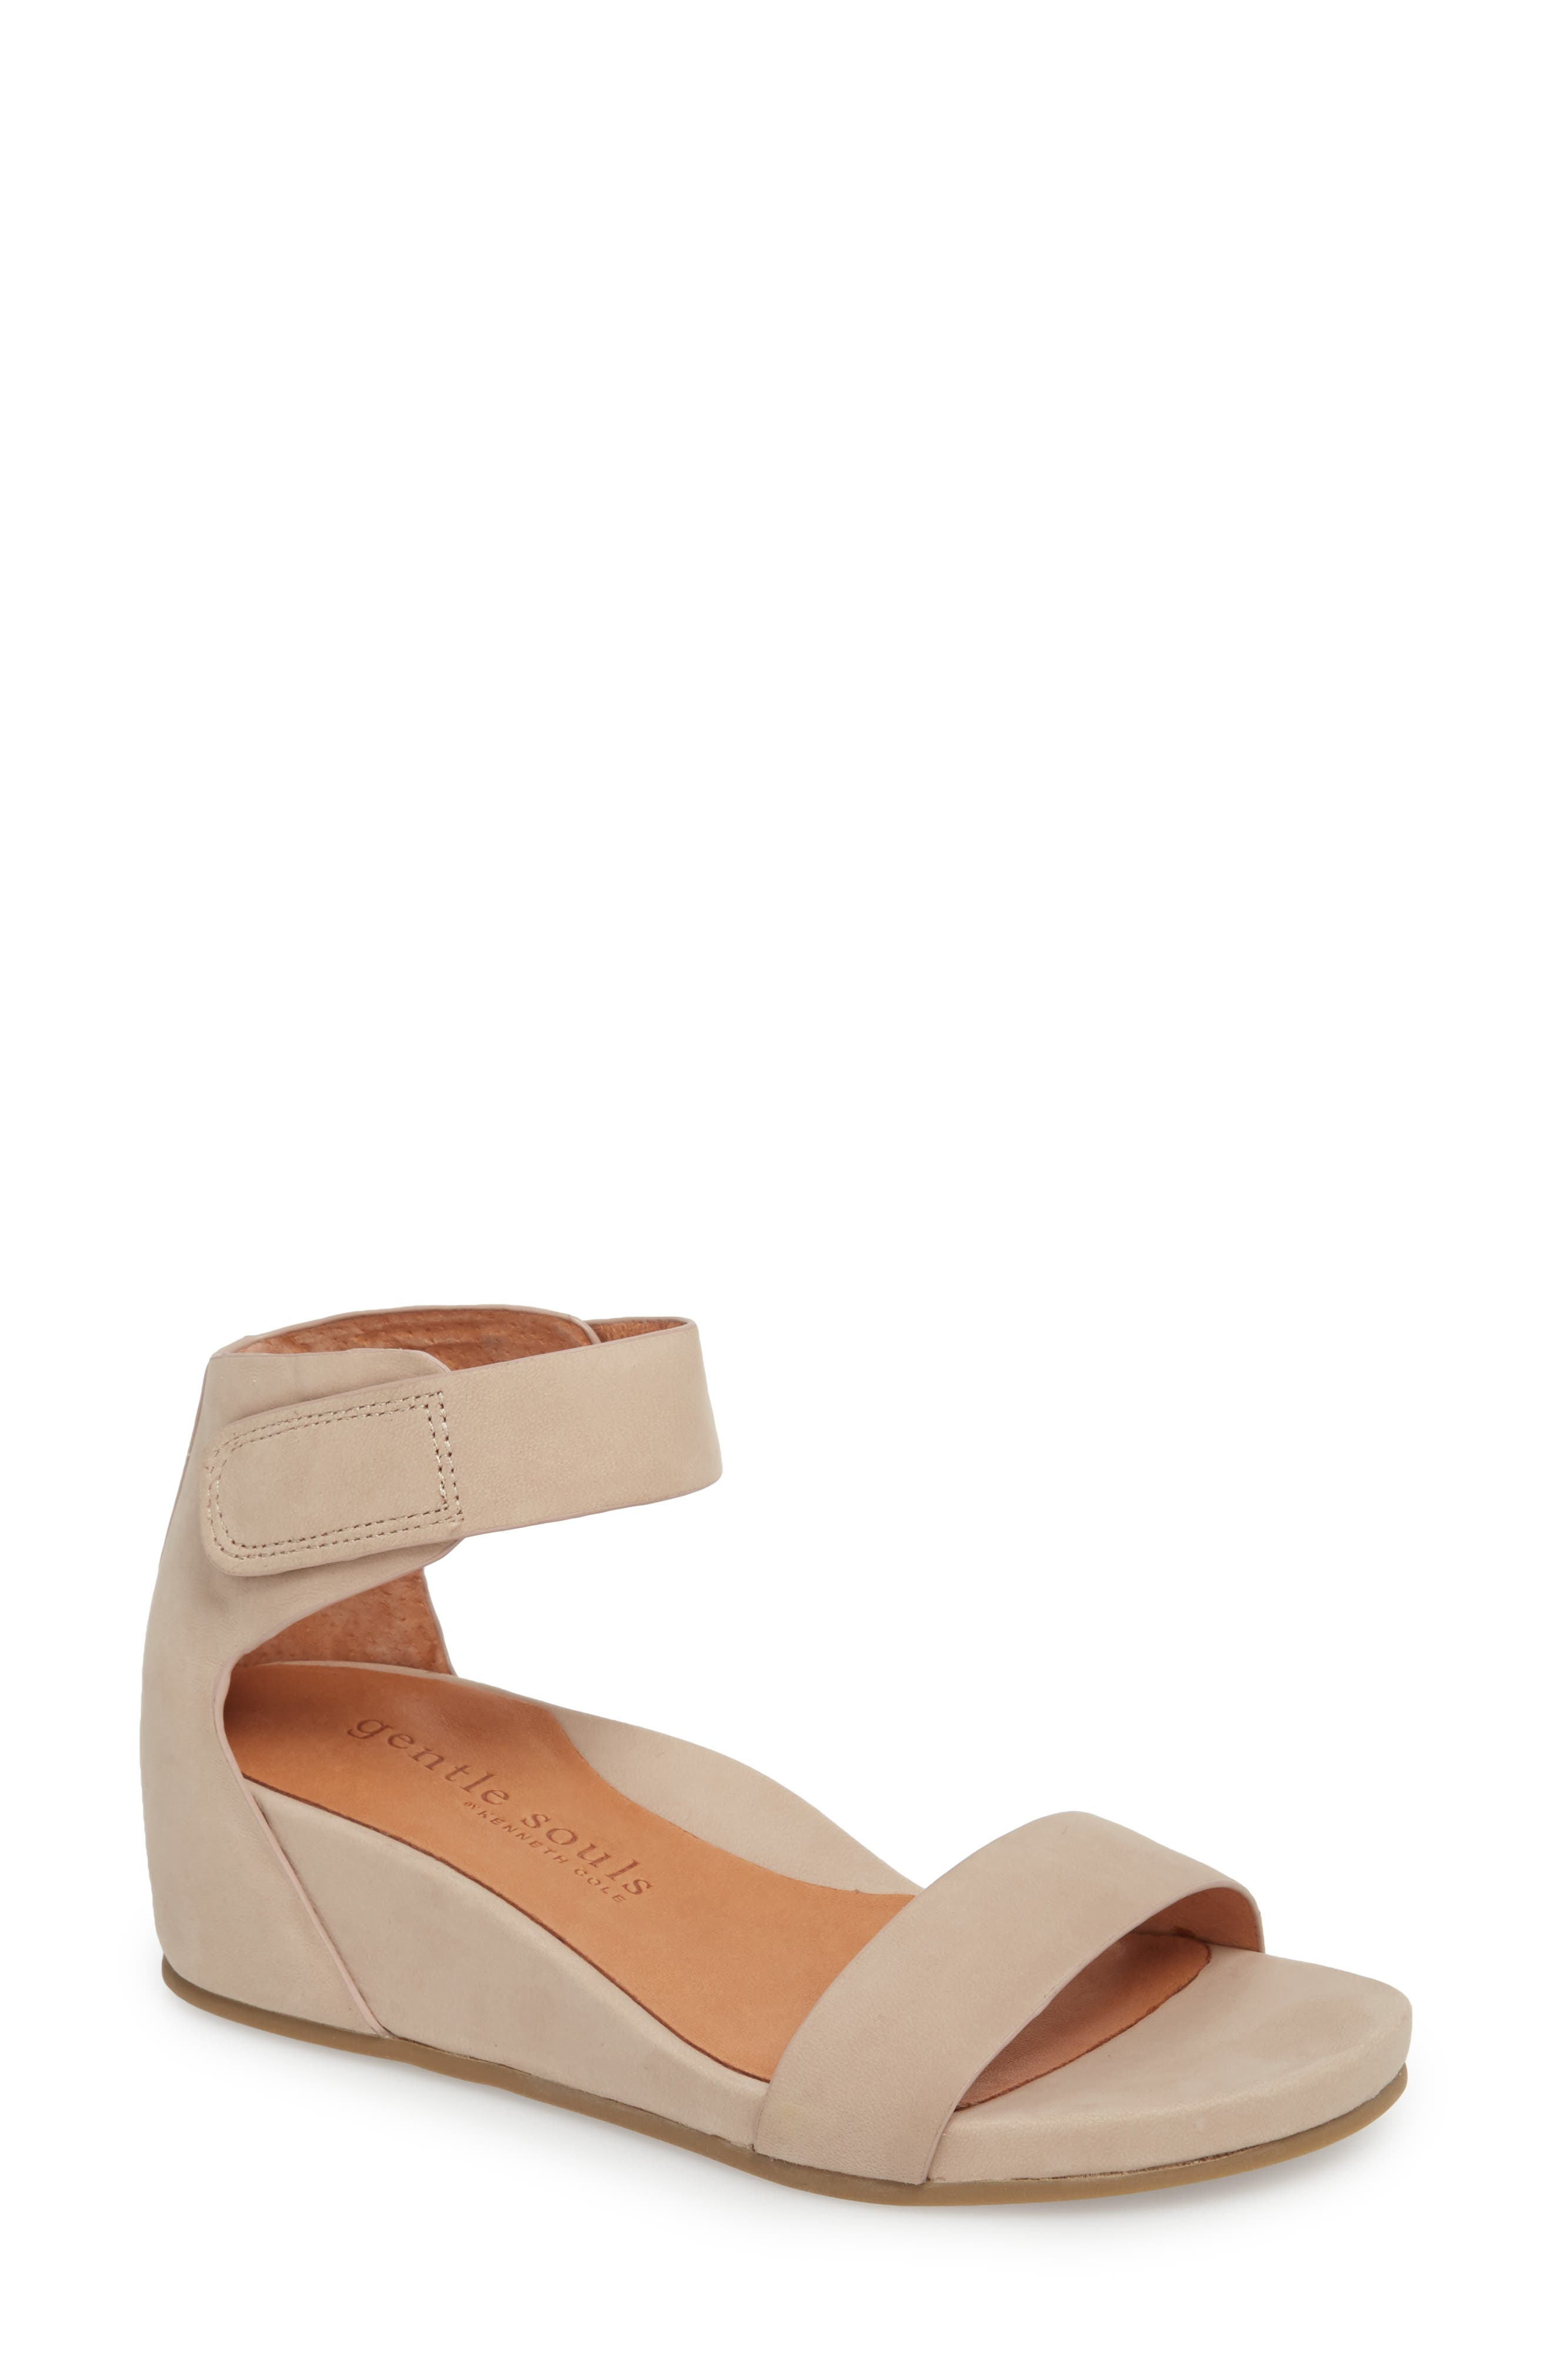 Gentle Souls Gianna Wedge Sandal (Women)